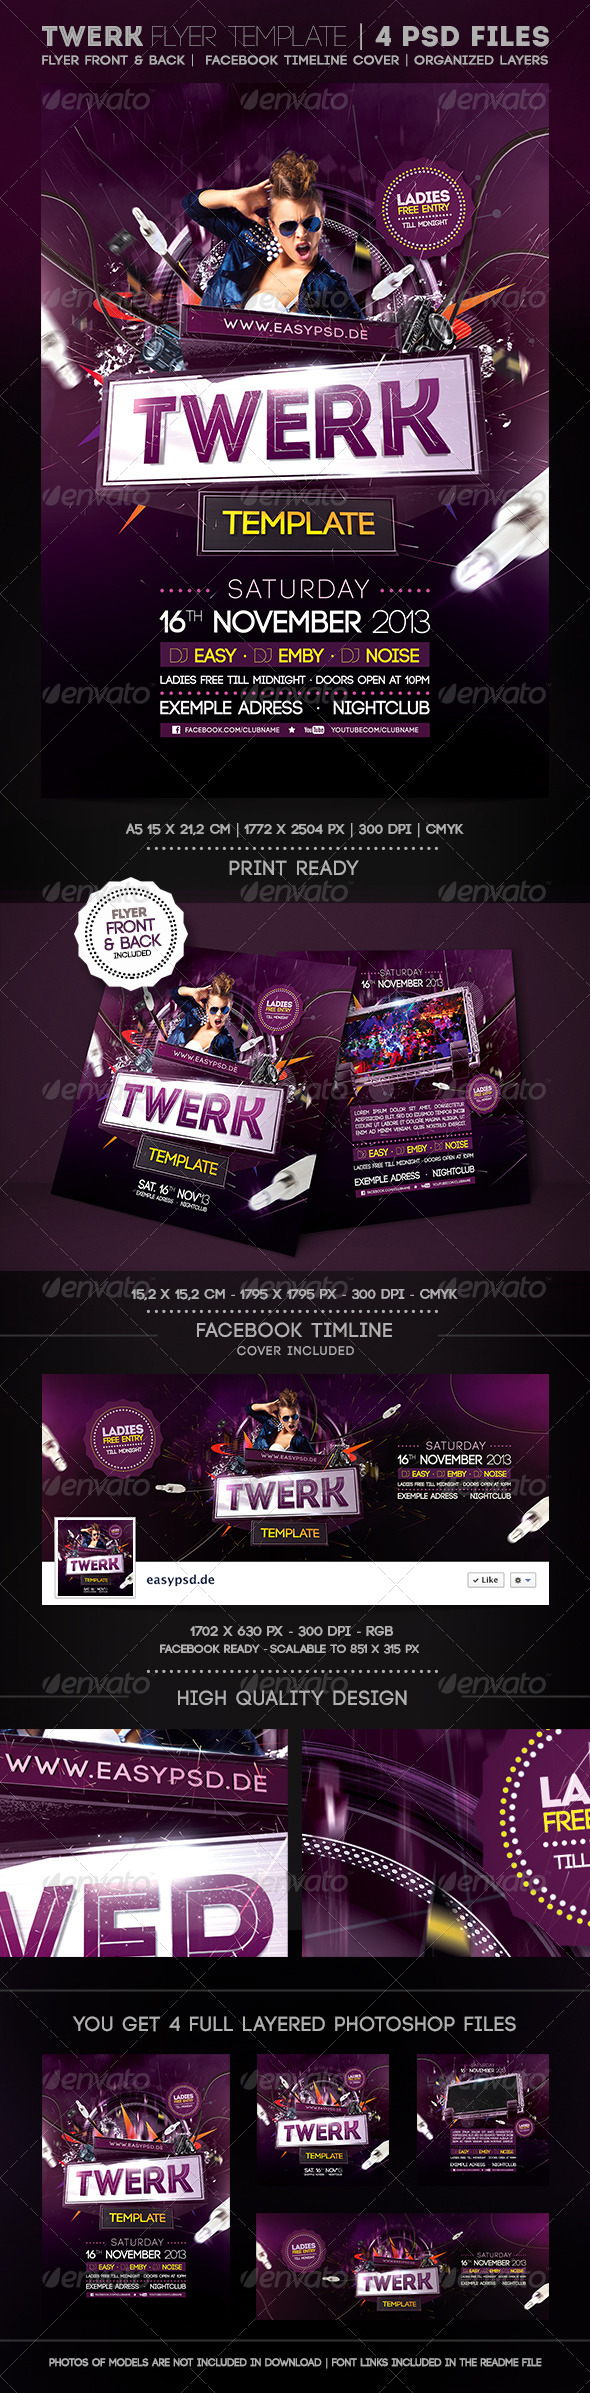 GraphicRiver Twerk Flyer Template 5700197